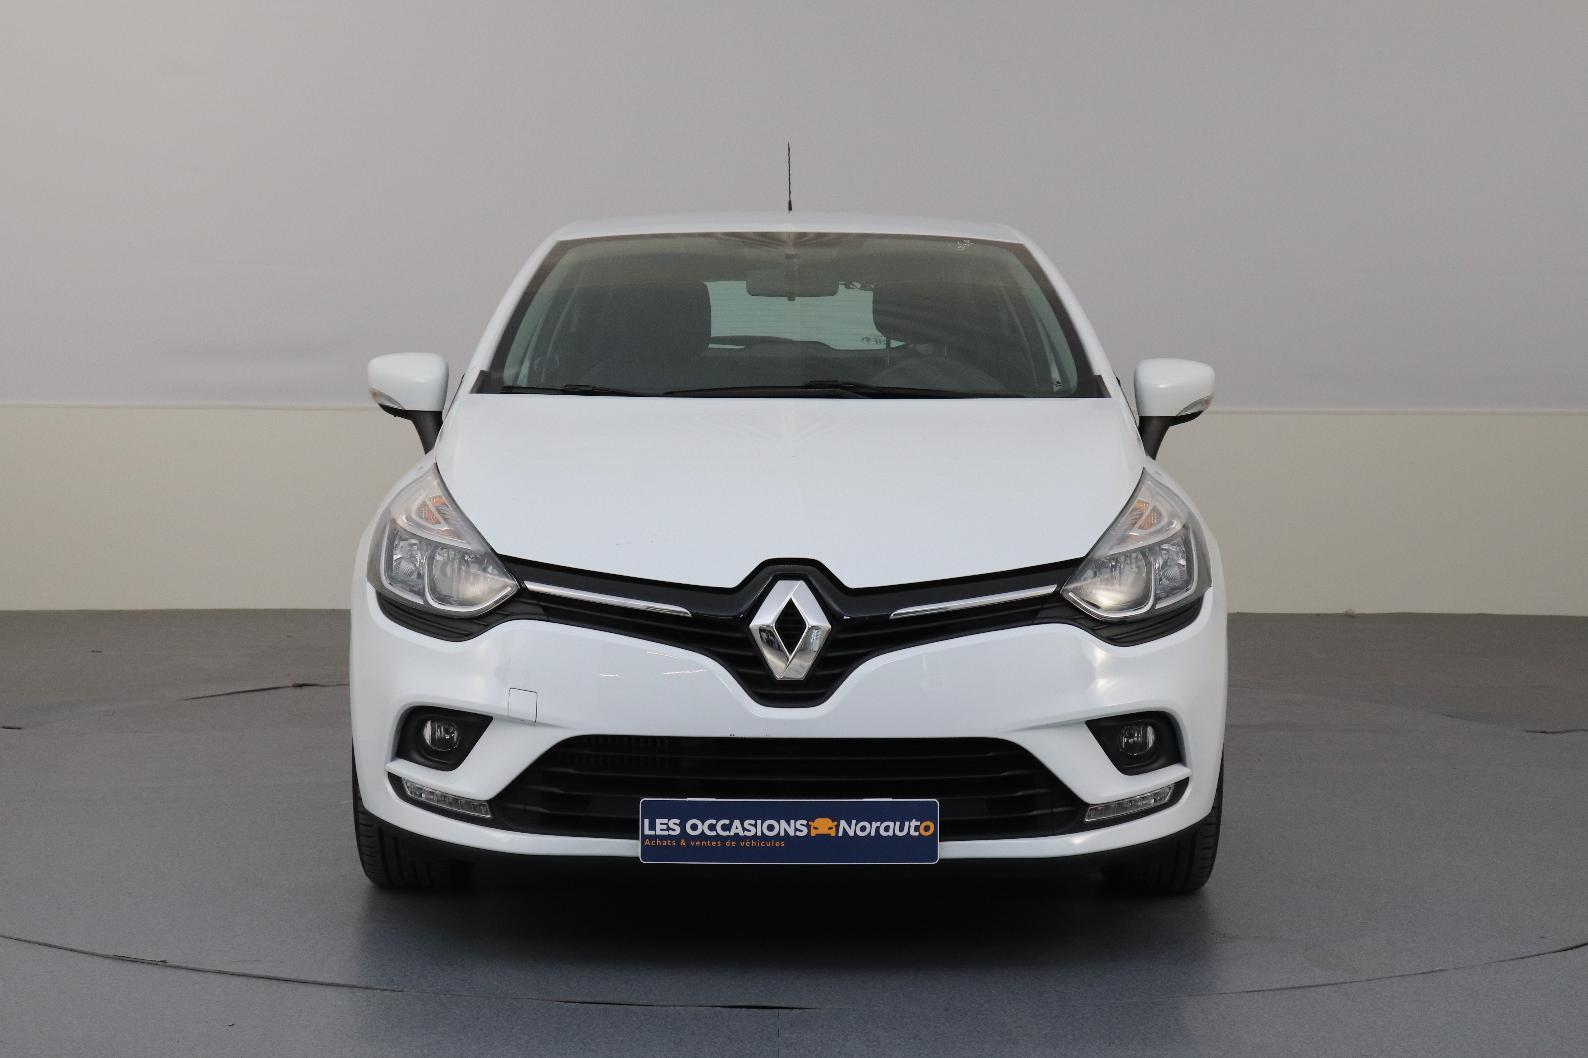 RENAULT CLIO IV BUSINESS Clio dCi 75 Energy Business